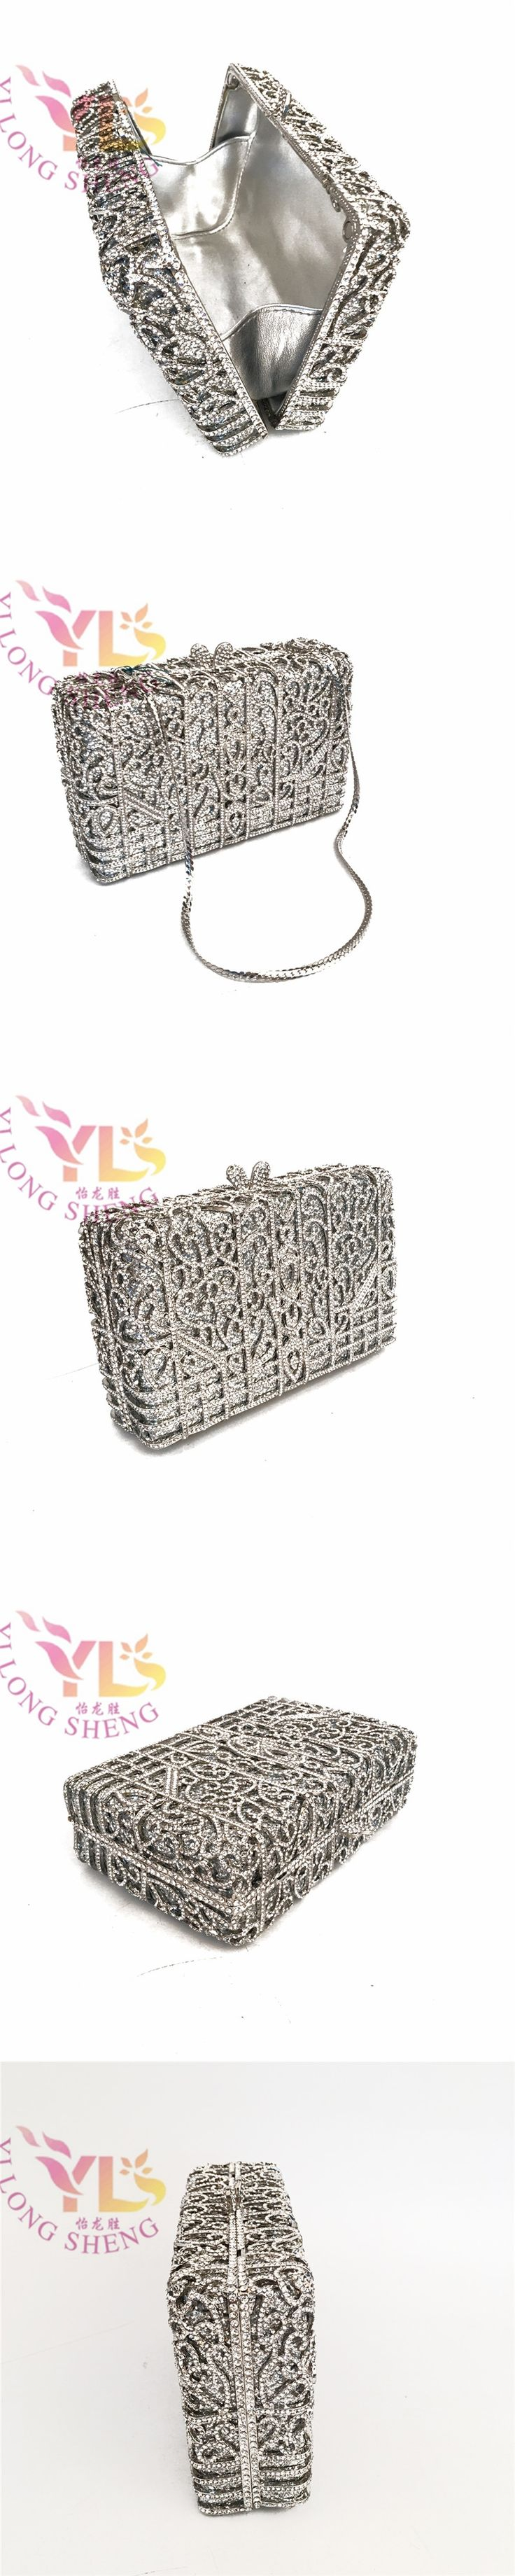 Clutch Evening Bags Women Stylish And Simple Silver Clutch Bag